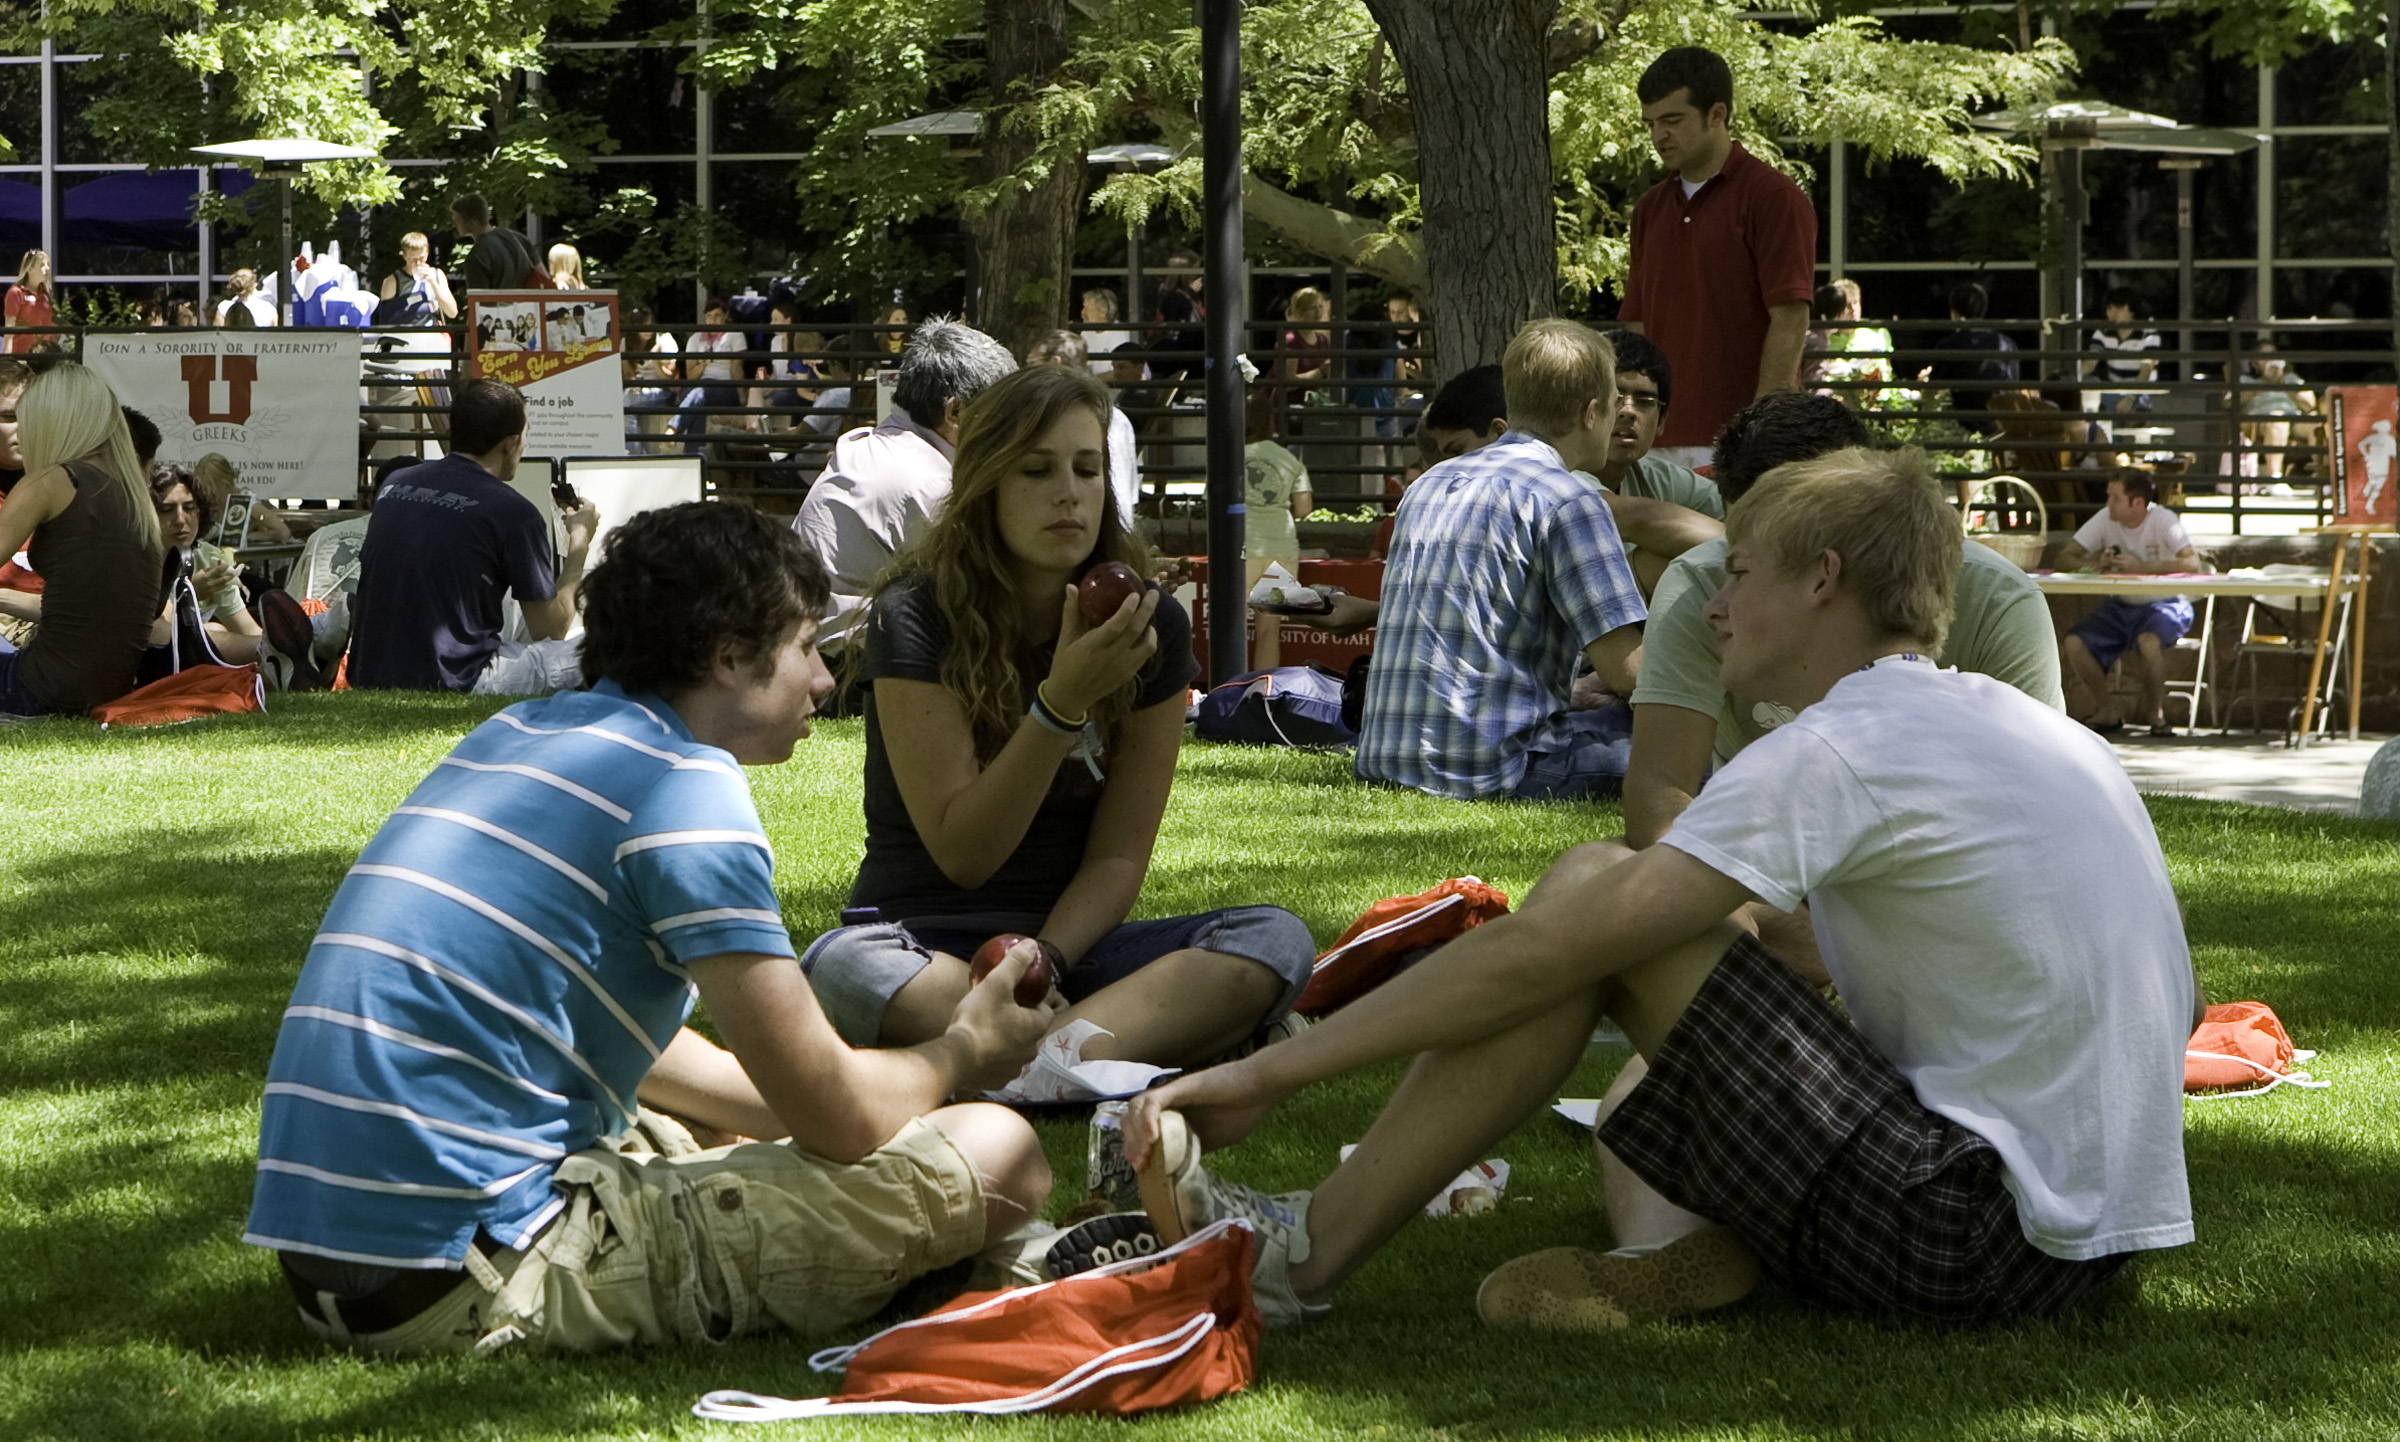 Students gather on the lawn outside the University Union.